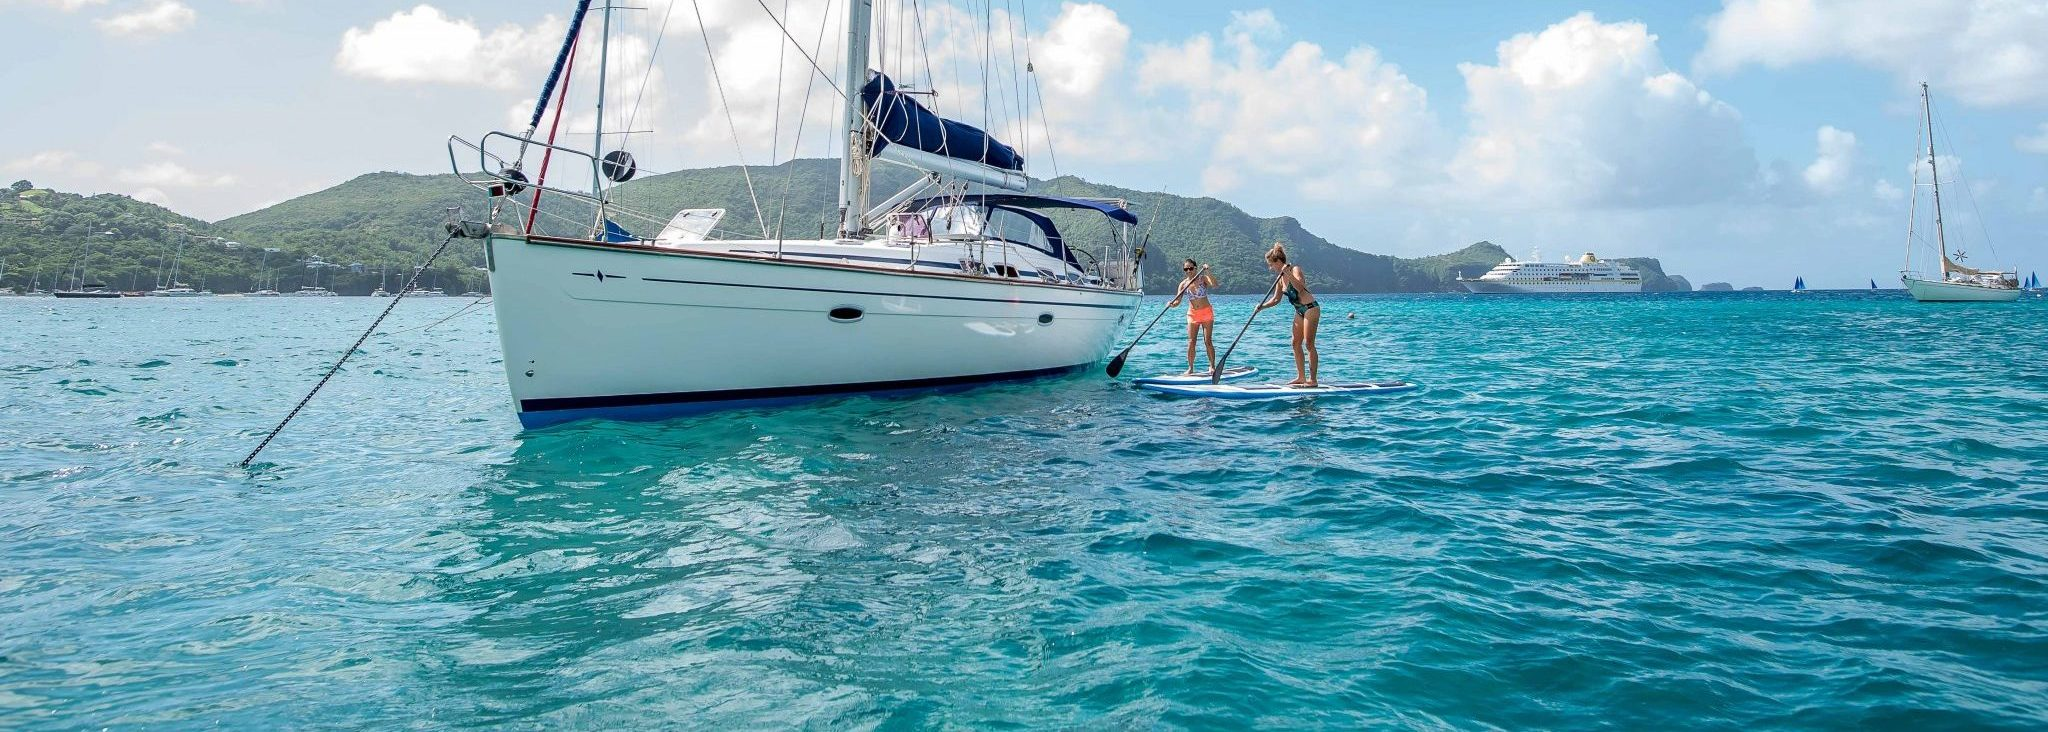 Sail Ionian Yacht LAZY TRAVELS (46 ft.)